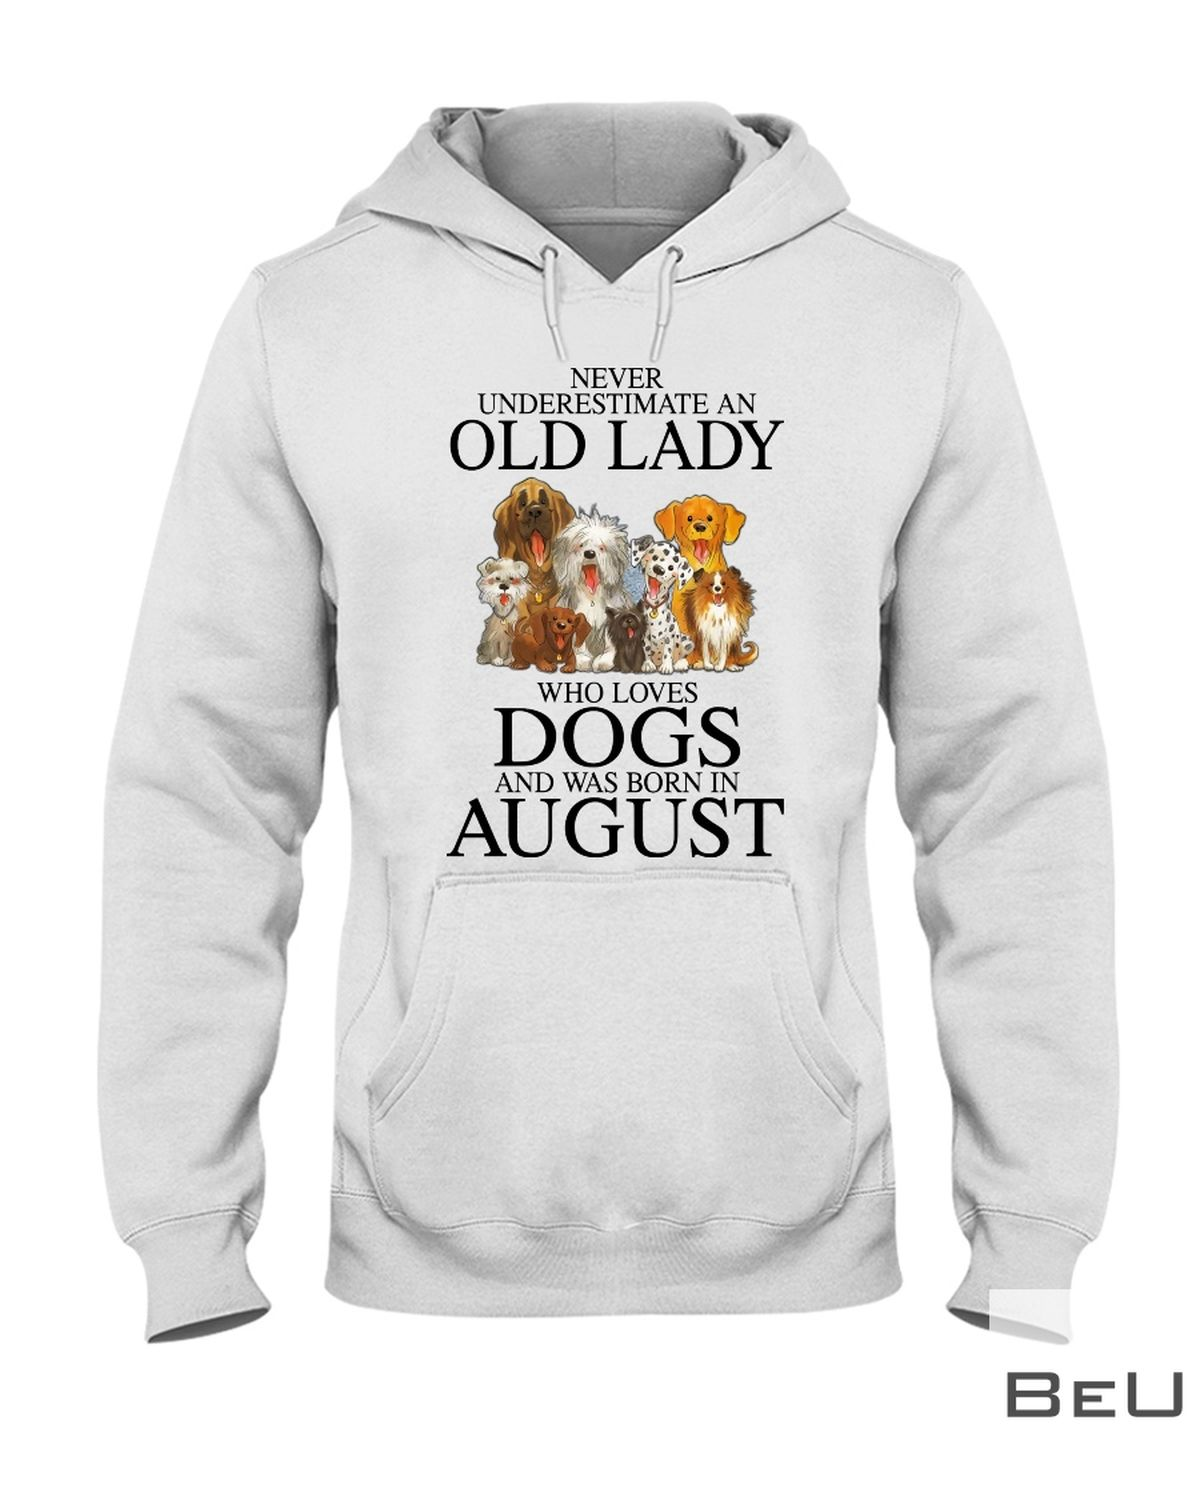 Never underestimate an old lady who loves dogs and was born in August shirtz